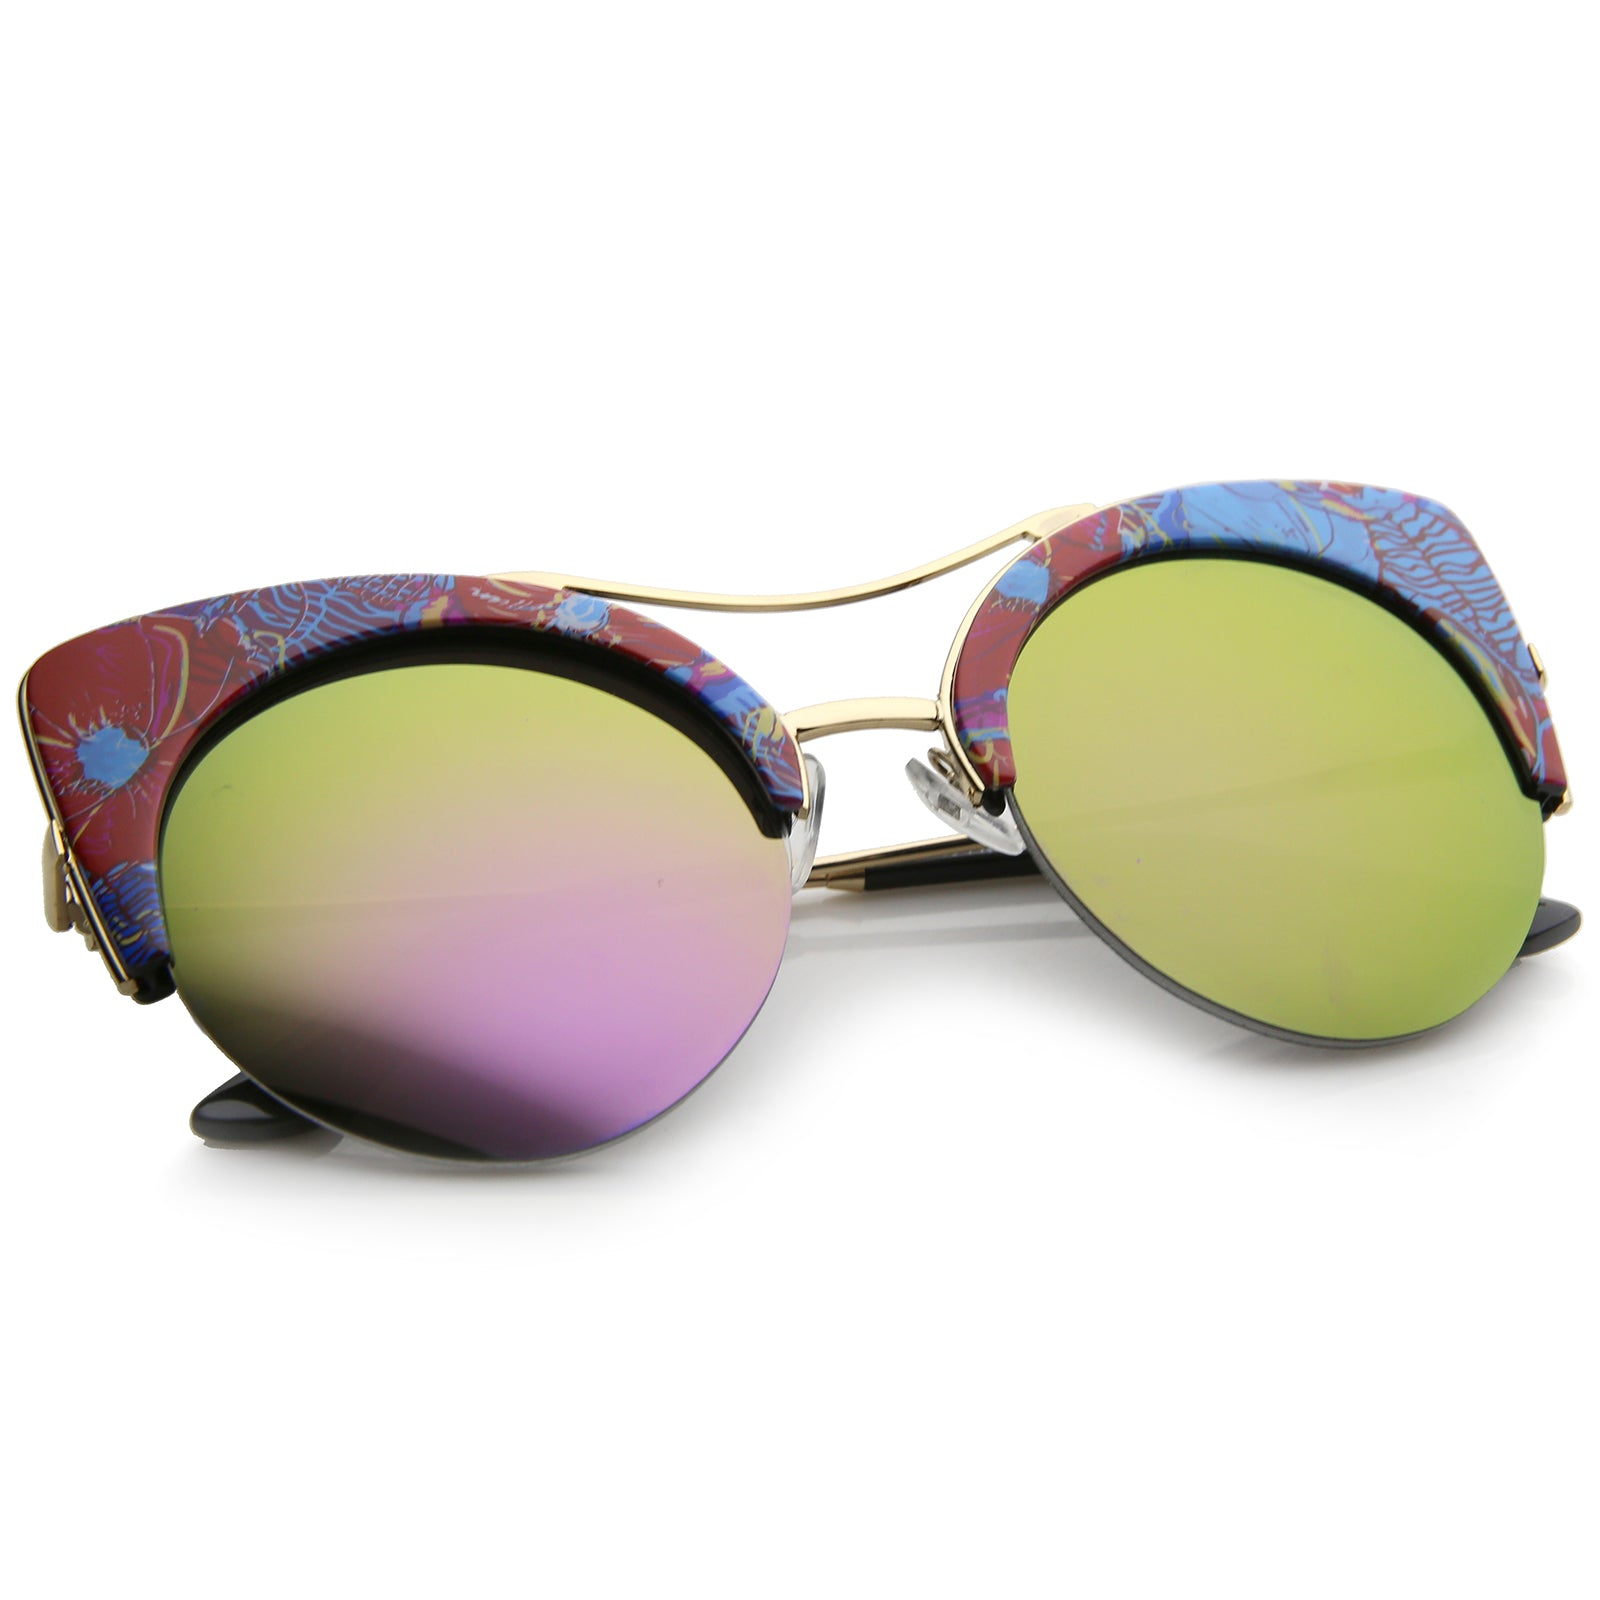 Women's Flat Lens Floral Print Semi-Rimless Round Cat Eye Sunglasses 52mm - sunglass.la - 4